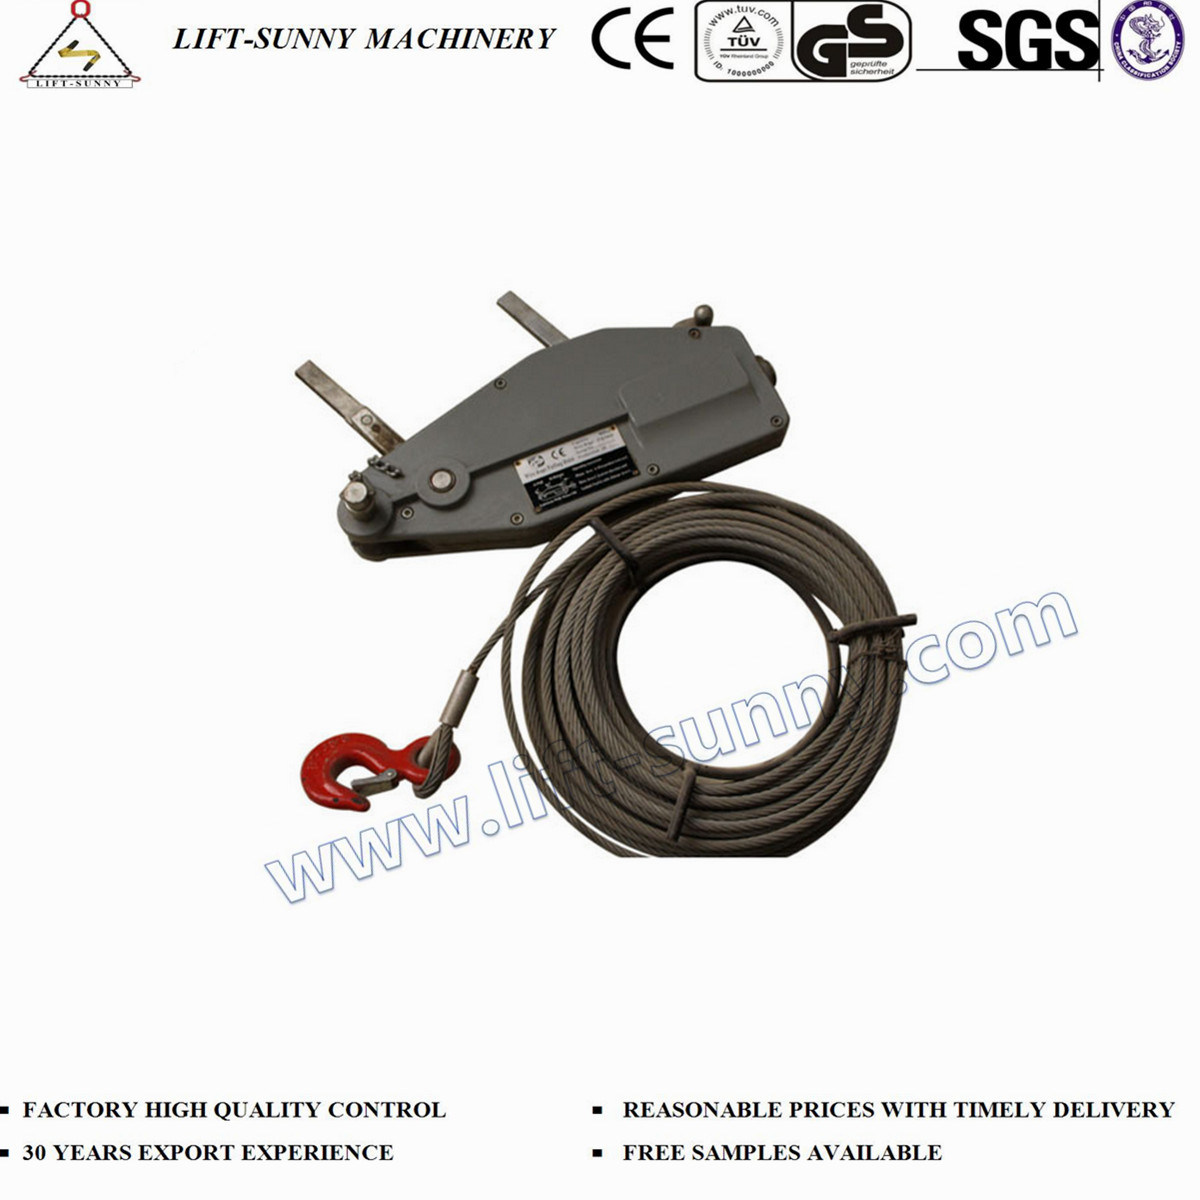 hight resolution of china cable winch lifting wire rope pulling hoist china lever pulling hoist winch pulling hoist